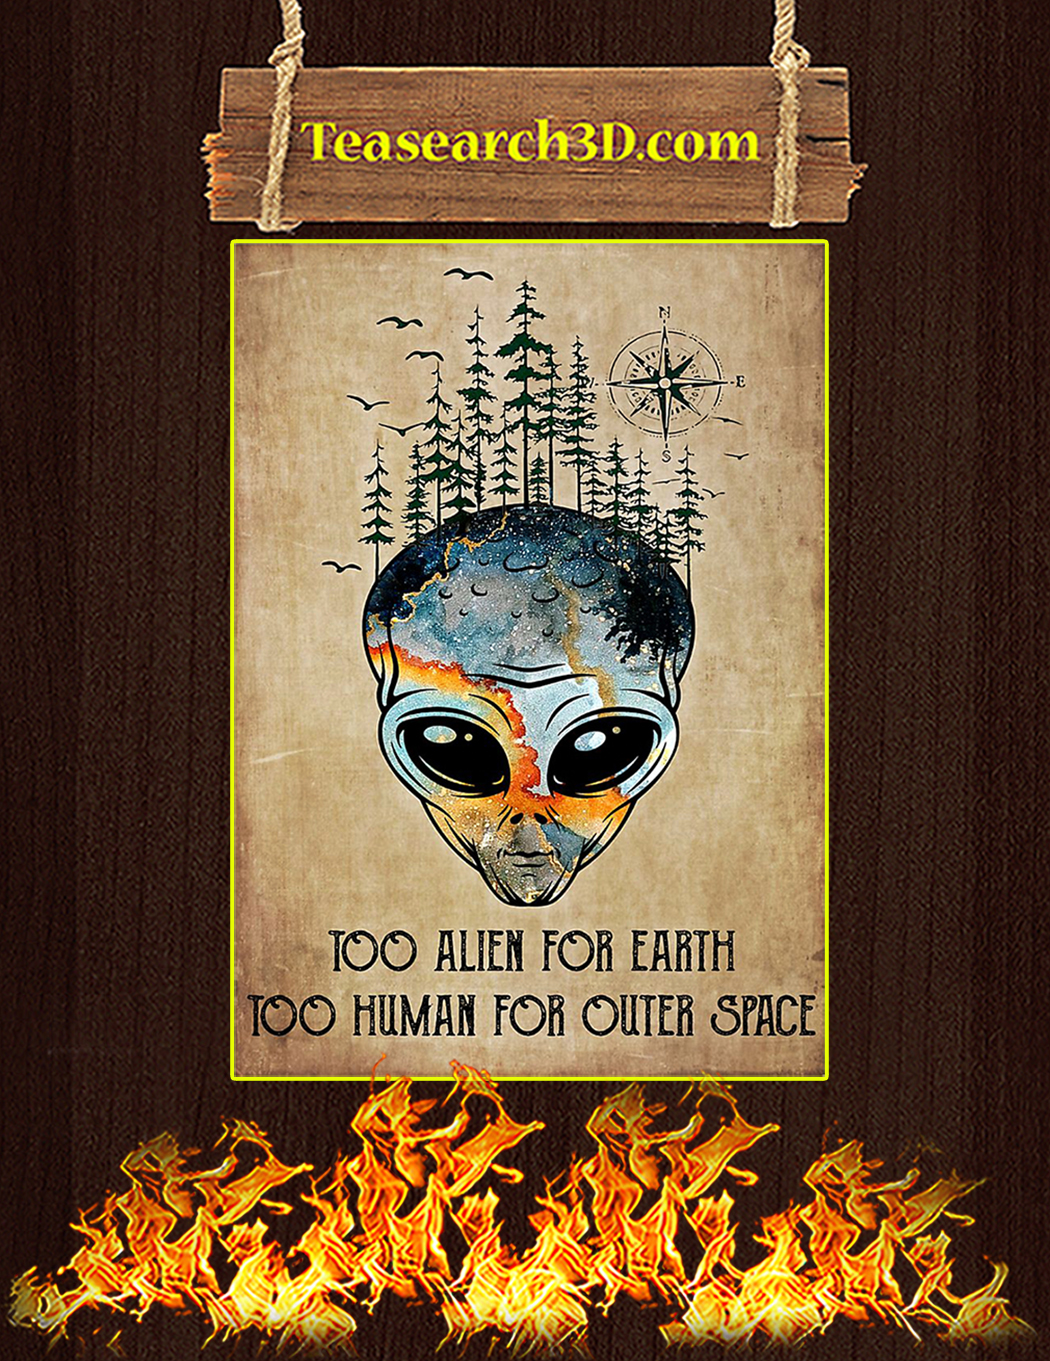 earth too human for outer space poster